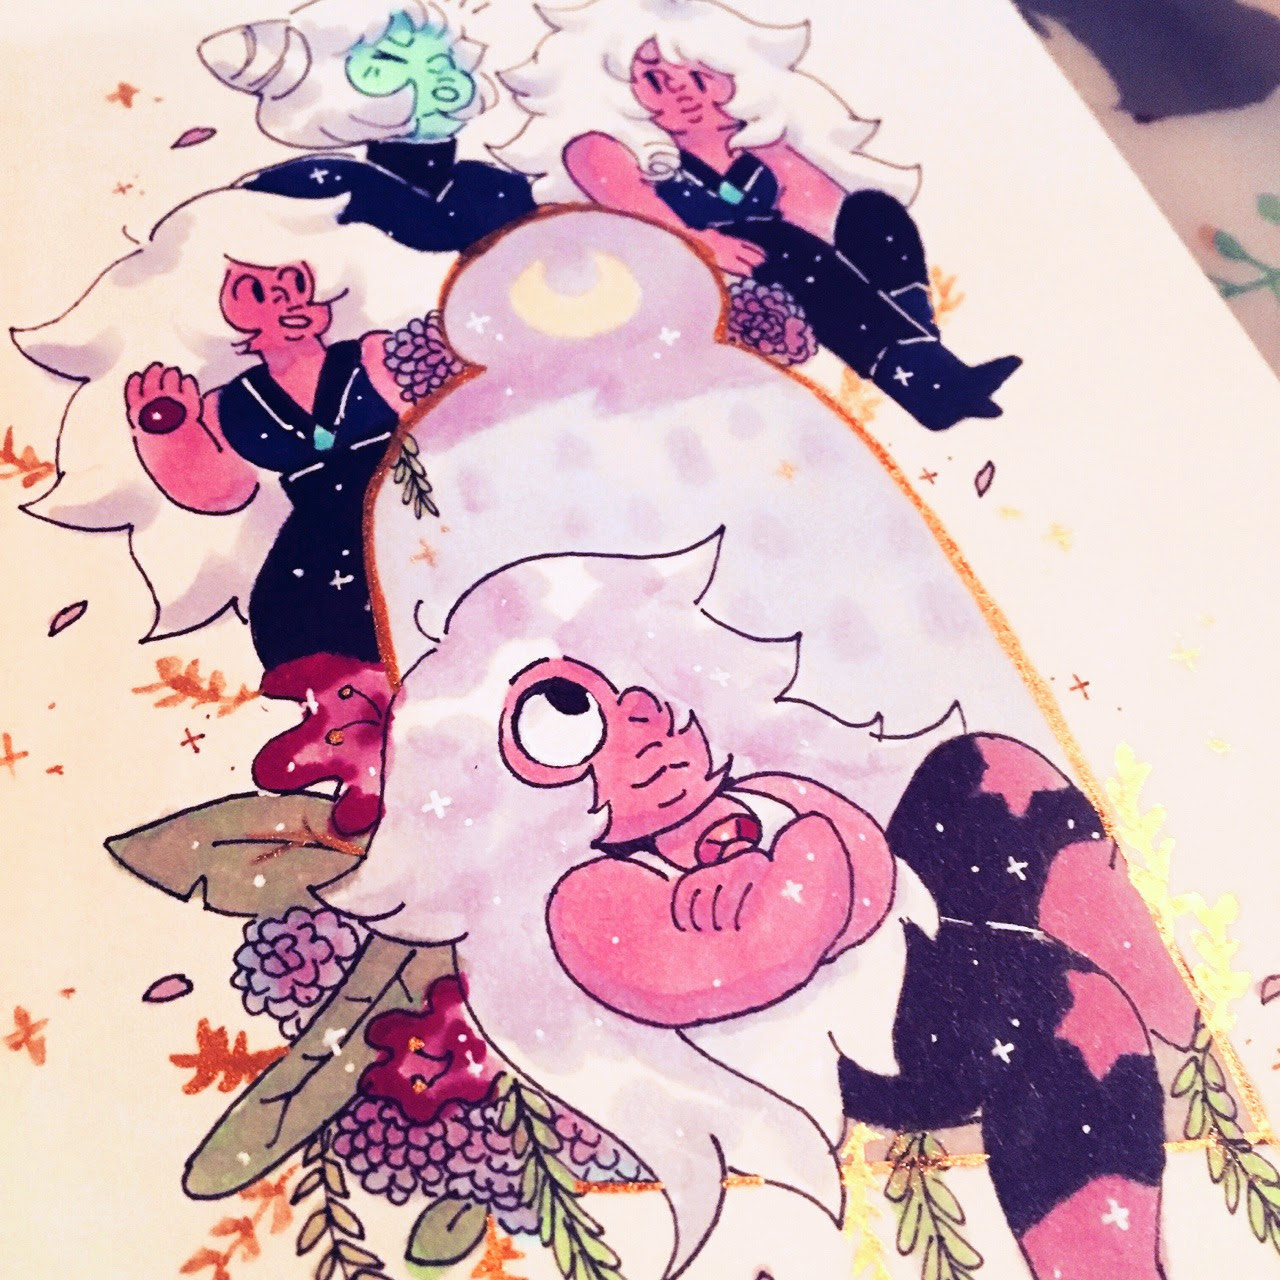 sketchbook things, watercolor + copic top is a rough draft for my part of a print exchange on ig! ♥